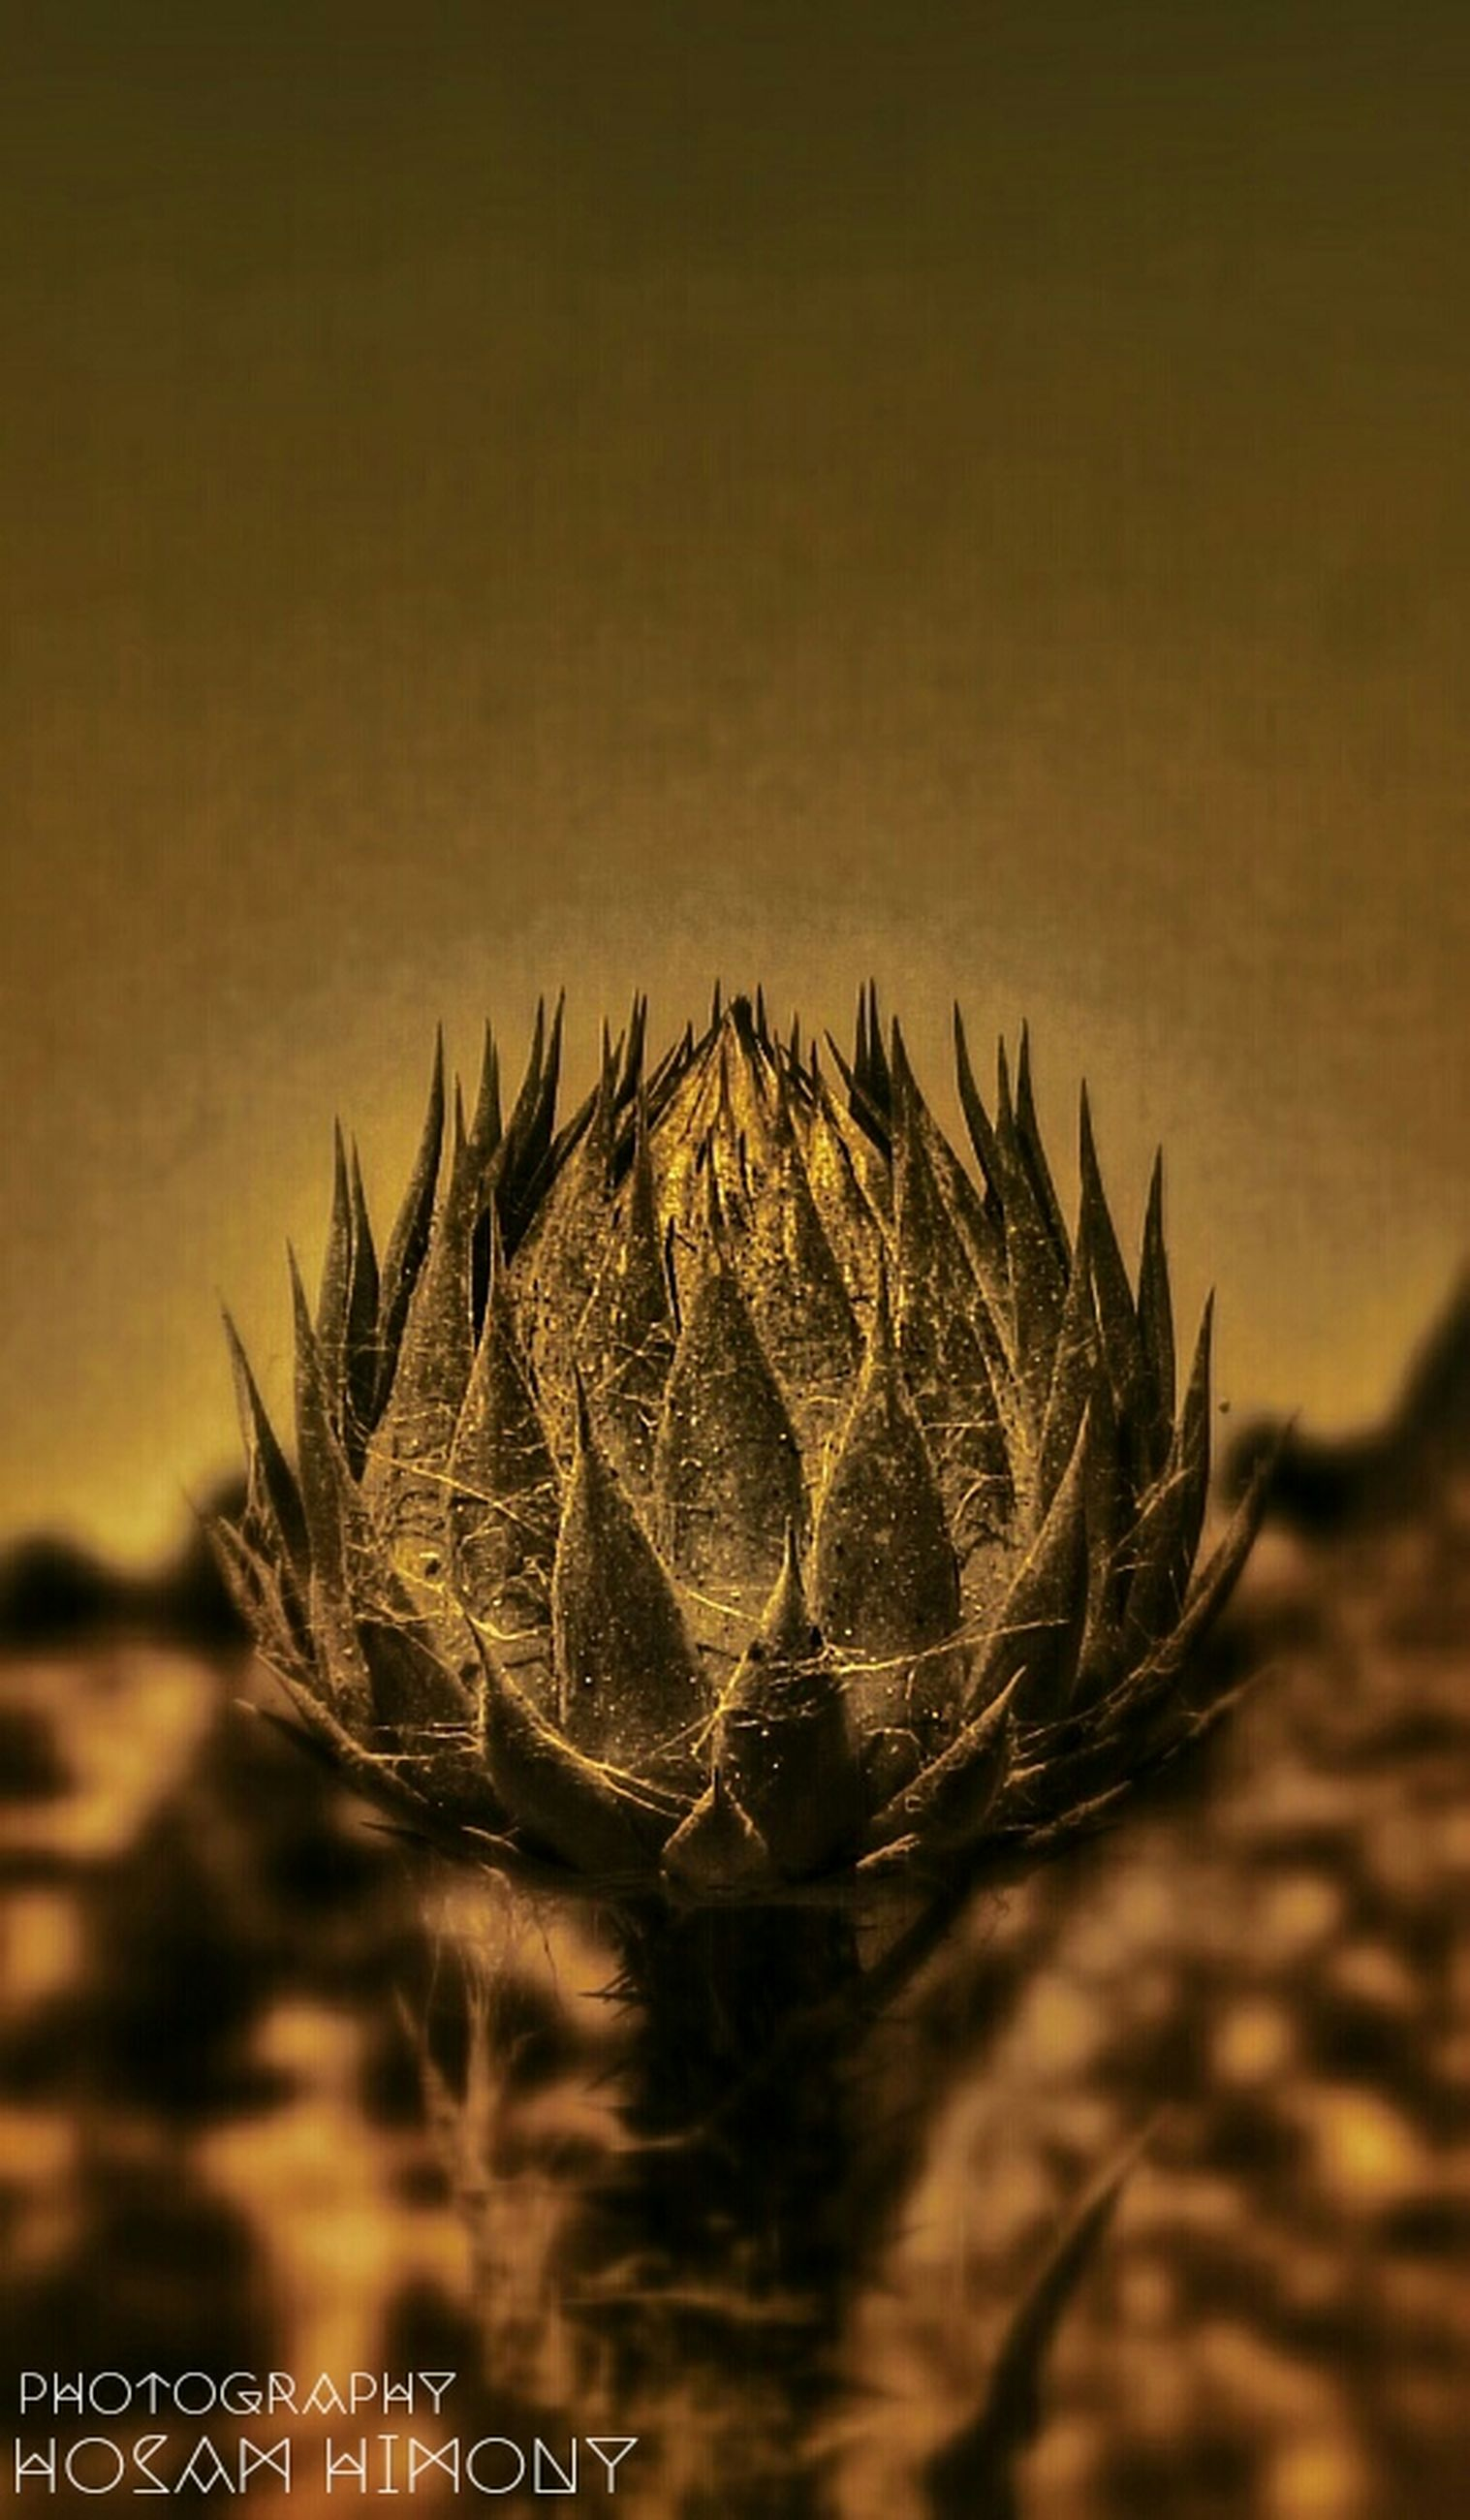 nature, close-up, clear sky, focus on foreground, outdoors, beauty in nature, no people, tranquility, sky, plant, growth, copy space, night, dusk, sunset, tranquil scene, pattern, illuminated, selective focus, cactus